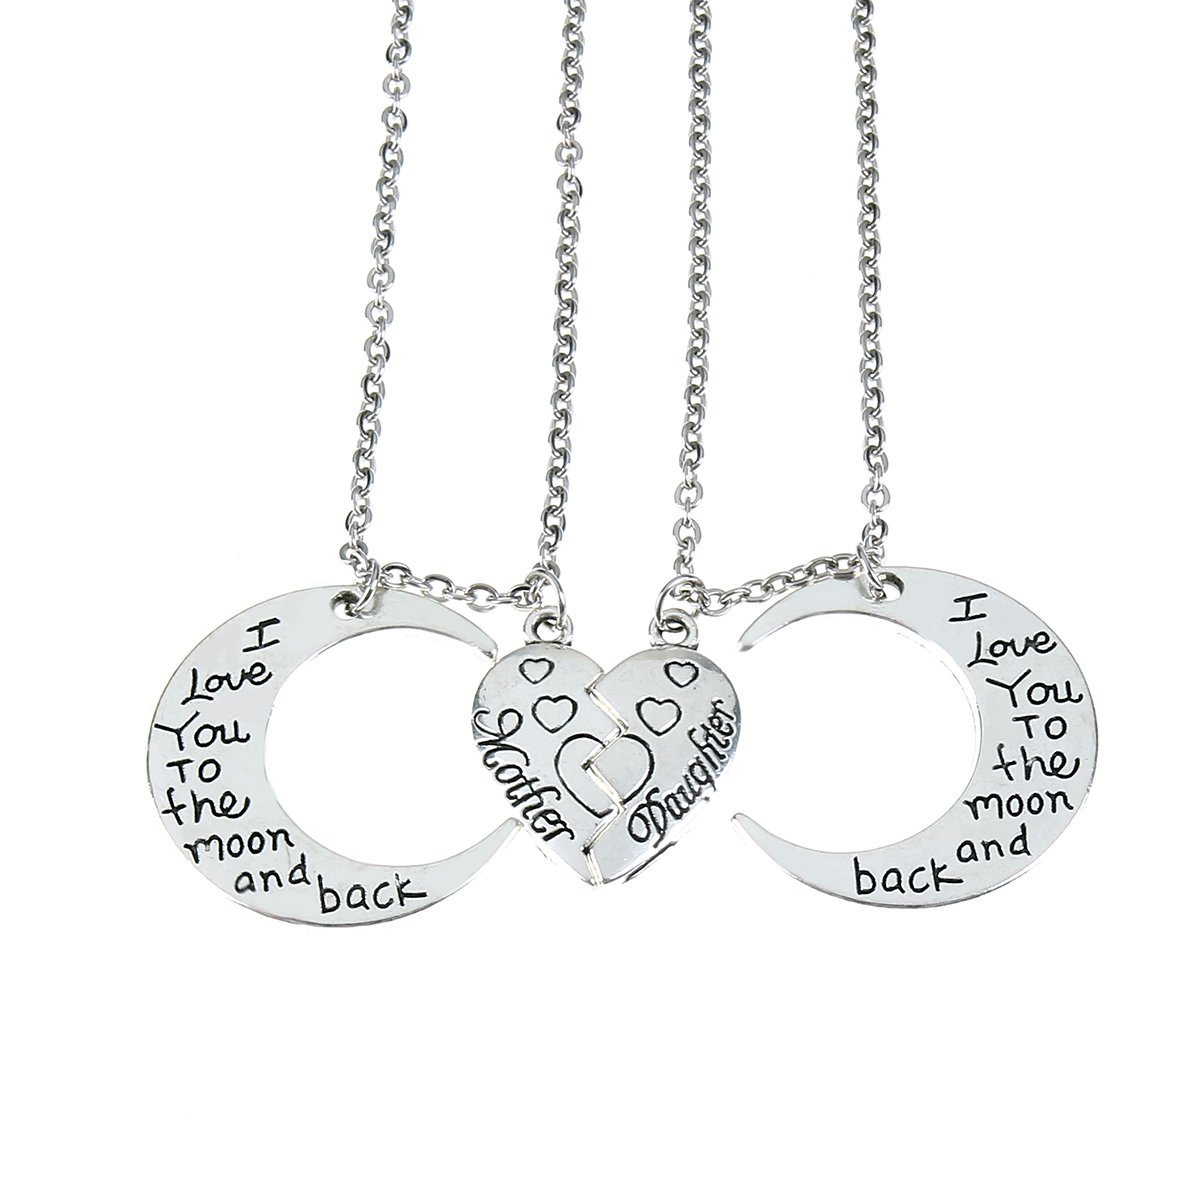 I Love You to The Moon and Back Necklaces Set, Mother Daughter 2 Half Broken Hearts Necklace Sets Gifts CG Jewelry NL-1017